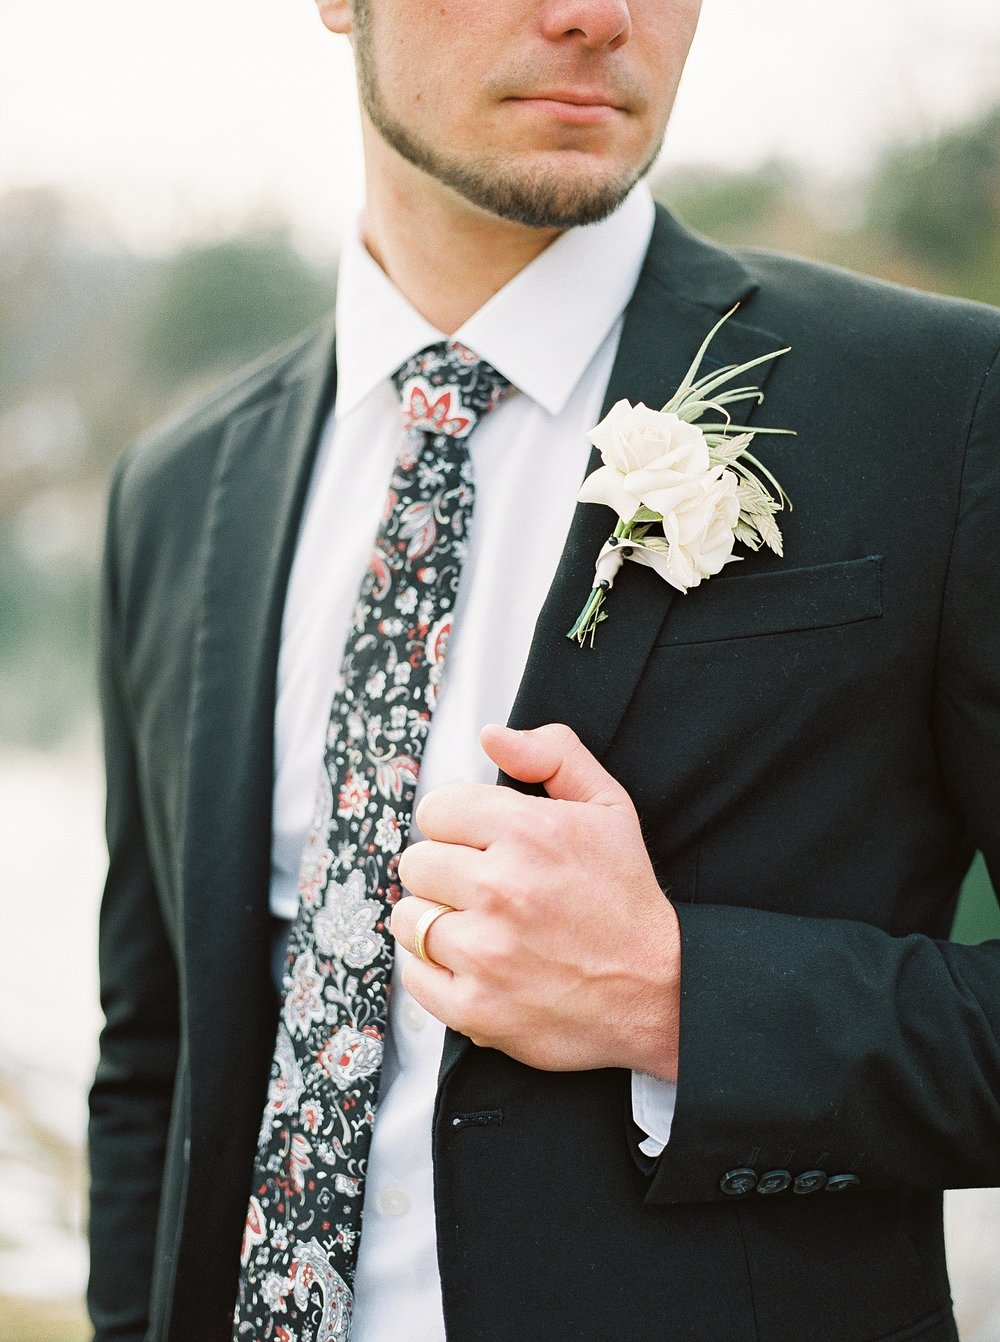 Snowy Winter Wedding at Wildcliff Events Lake With Earthy Jewel Tones and Organic Refined Style by Kelsi Kliethermes Photography Kansas City Missouri Wedding Photographer_0130.jpg